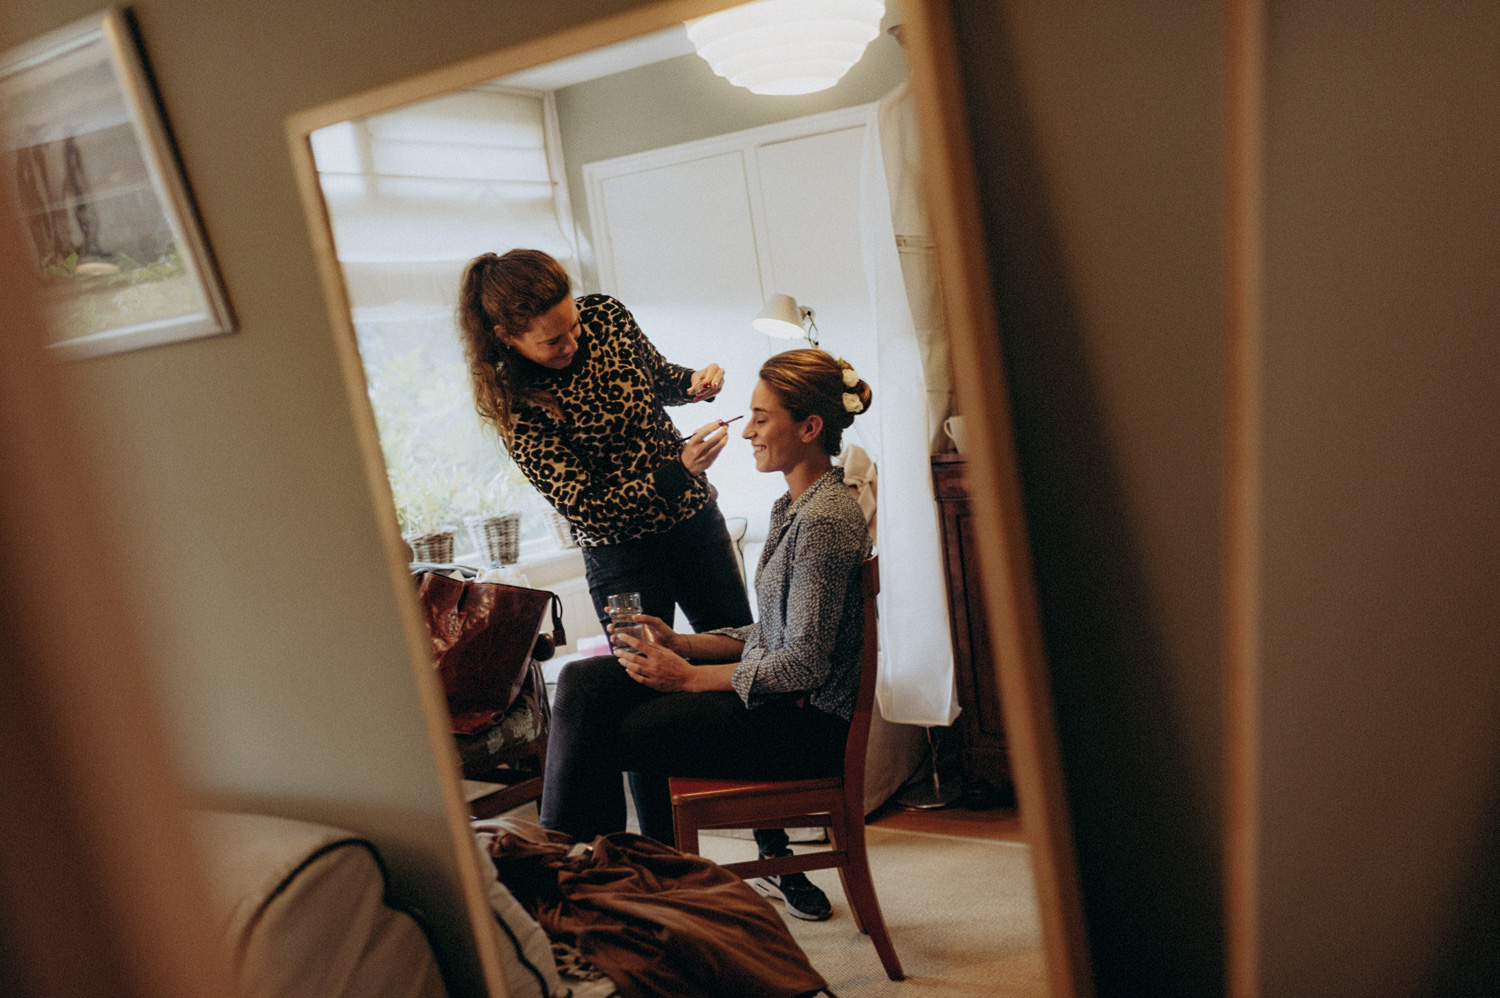 Bride getting her make-up done in mirror